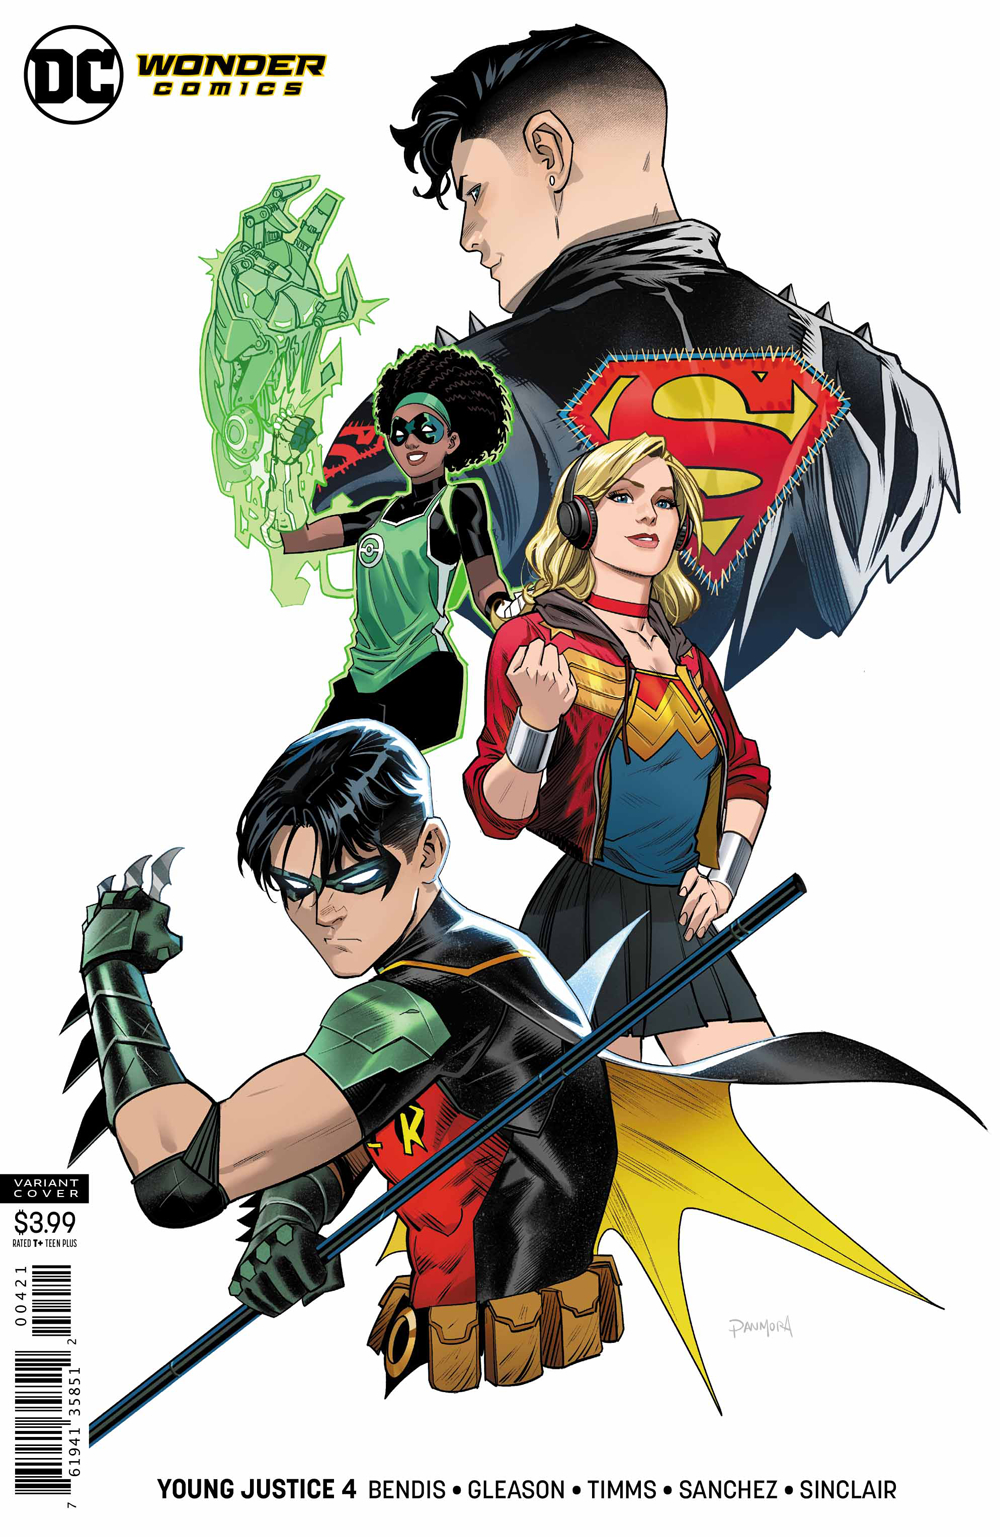 YOUNG JUSTICE #4 VAR ED